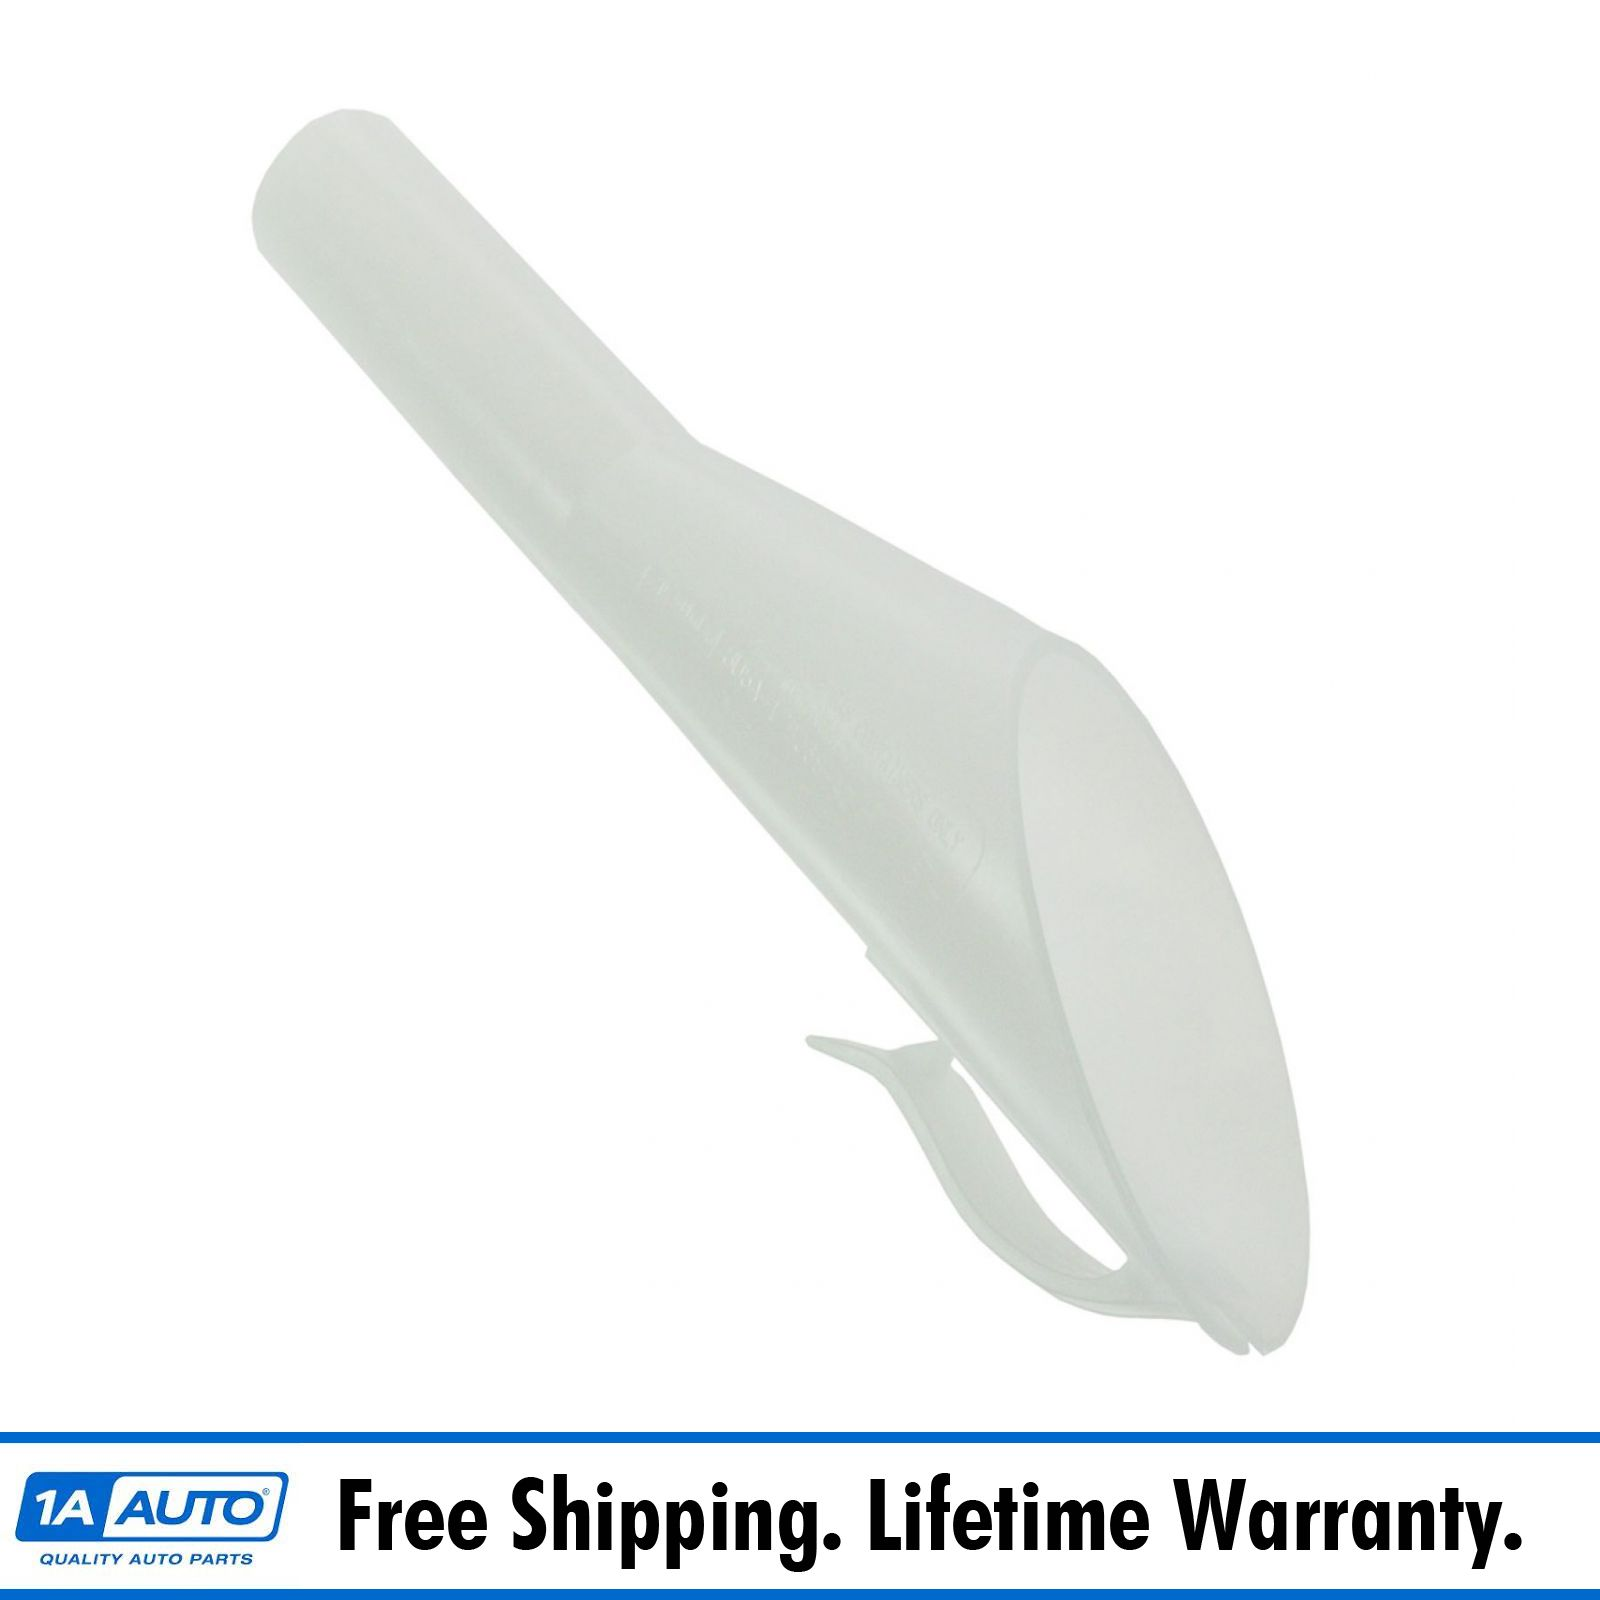 Easy Fuel Fill Tank Supply Gas Cap Funnel Tube for Ford Lincoln Mercury White